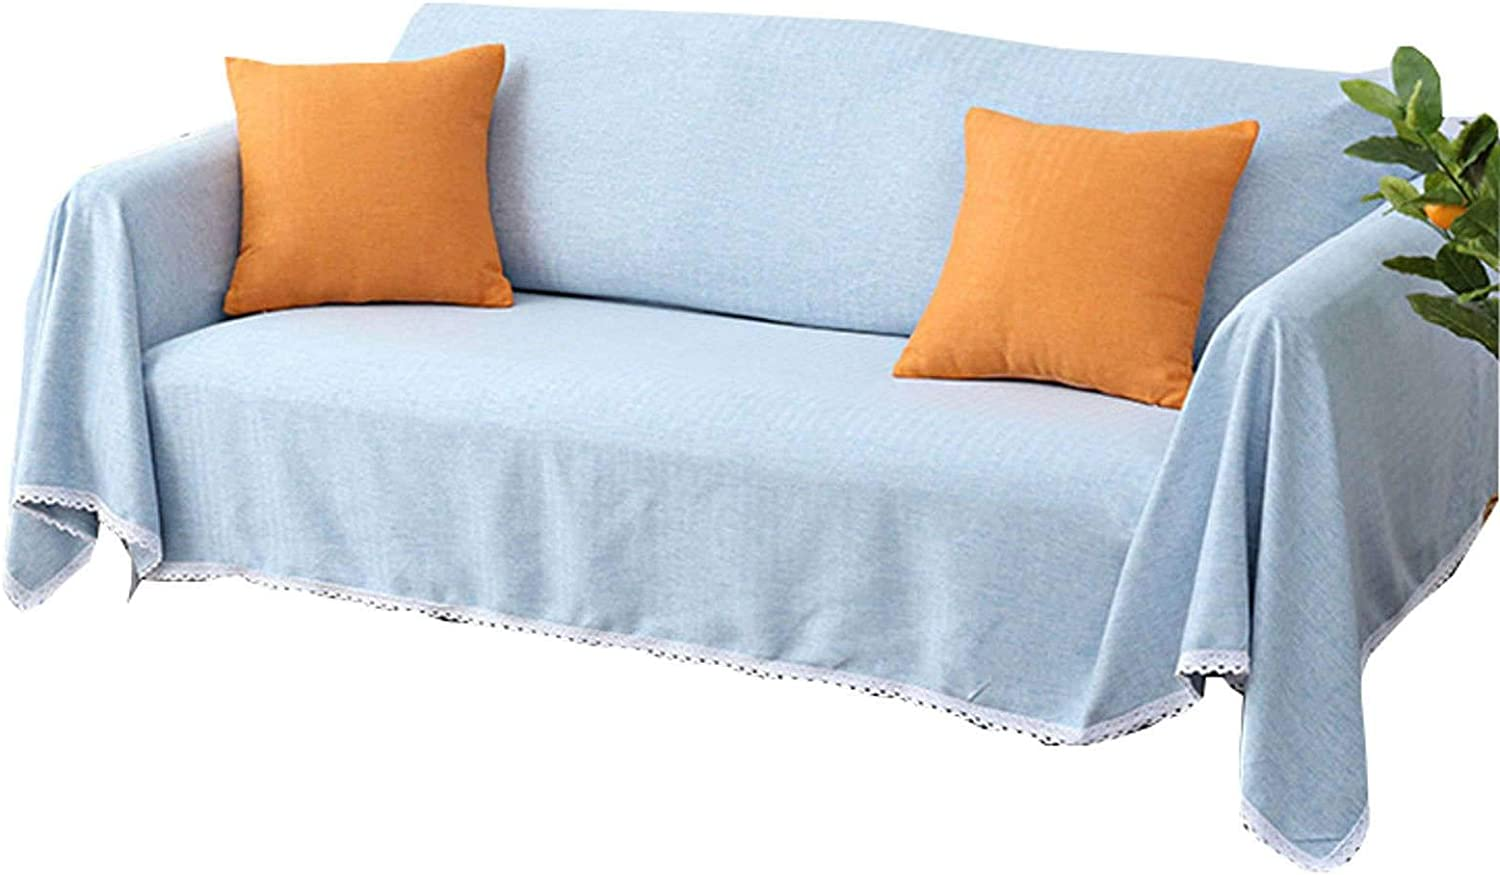 ZHFEL Sofa Slipcover Solid 5% OFF Color Universal Couch Cus Cover Bombing free shipping for 3